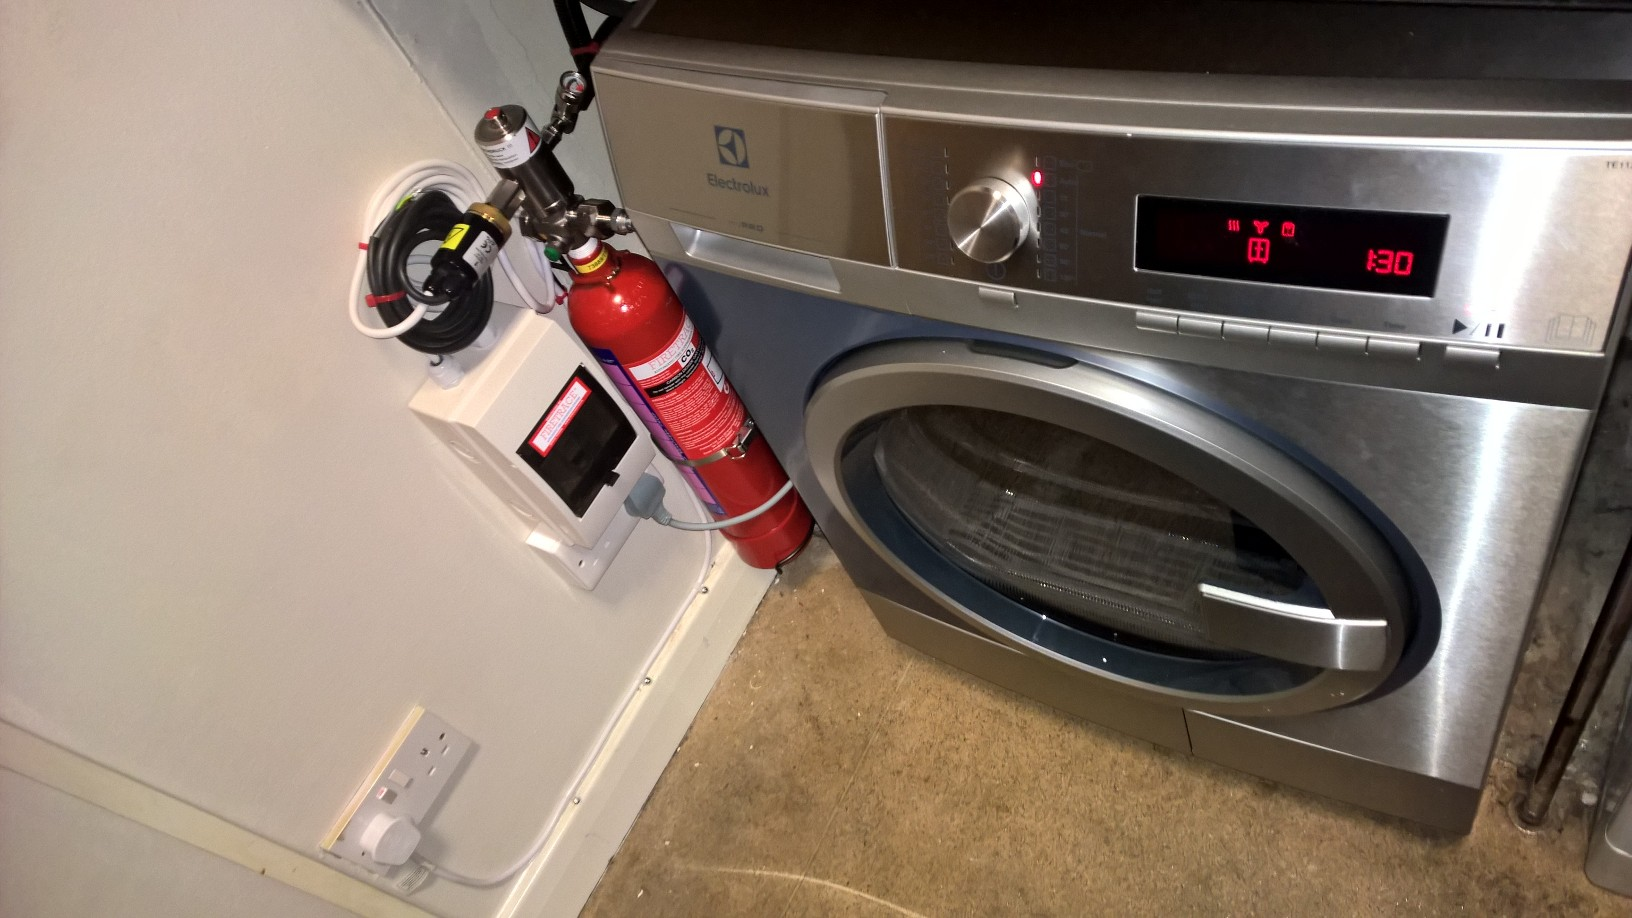 Firetrace Fire Suppression System Installed onto a tumble dryer